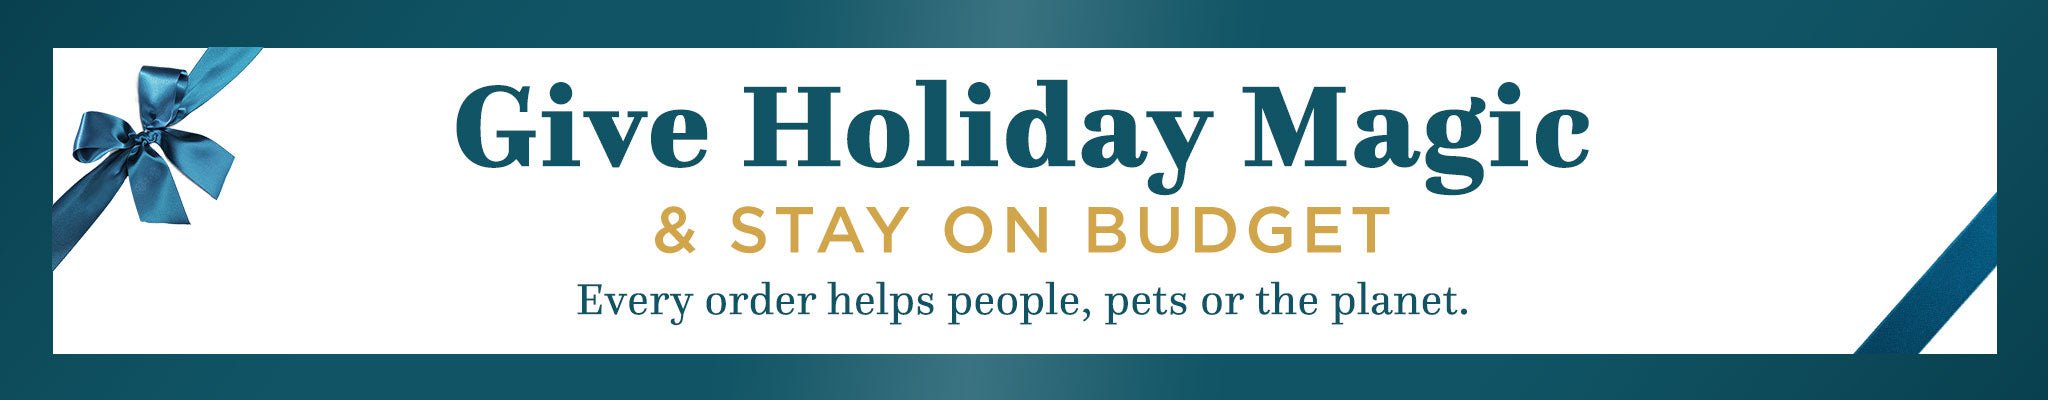 Give Holiday Magic & Stay on Budget | Every order helps people, pets or the planet.